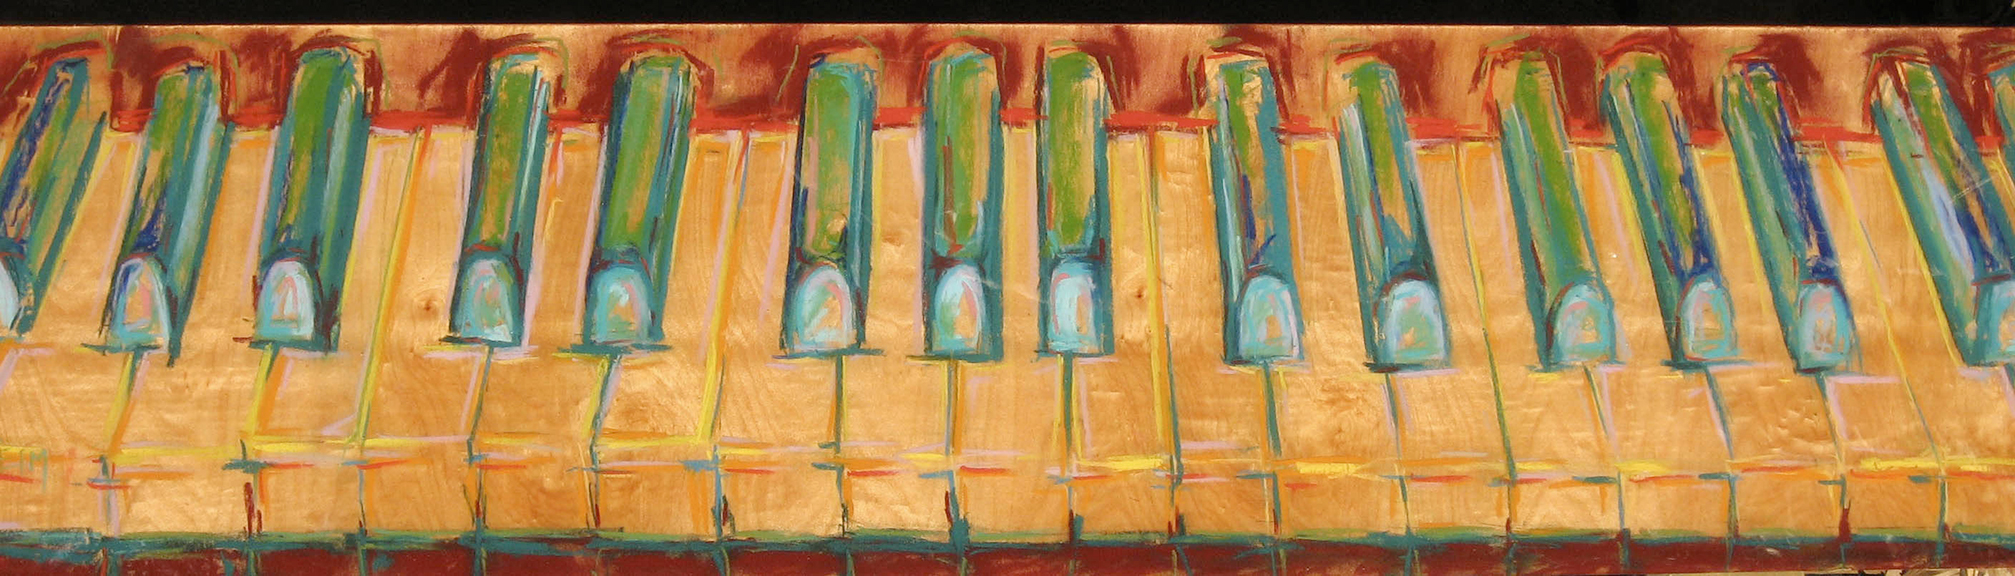 Piano Keys - Pastel on Wood Panel 48x12